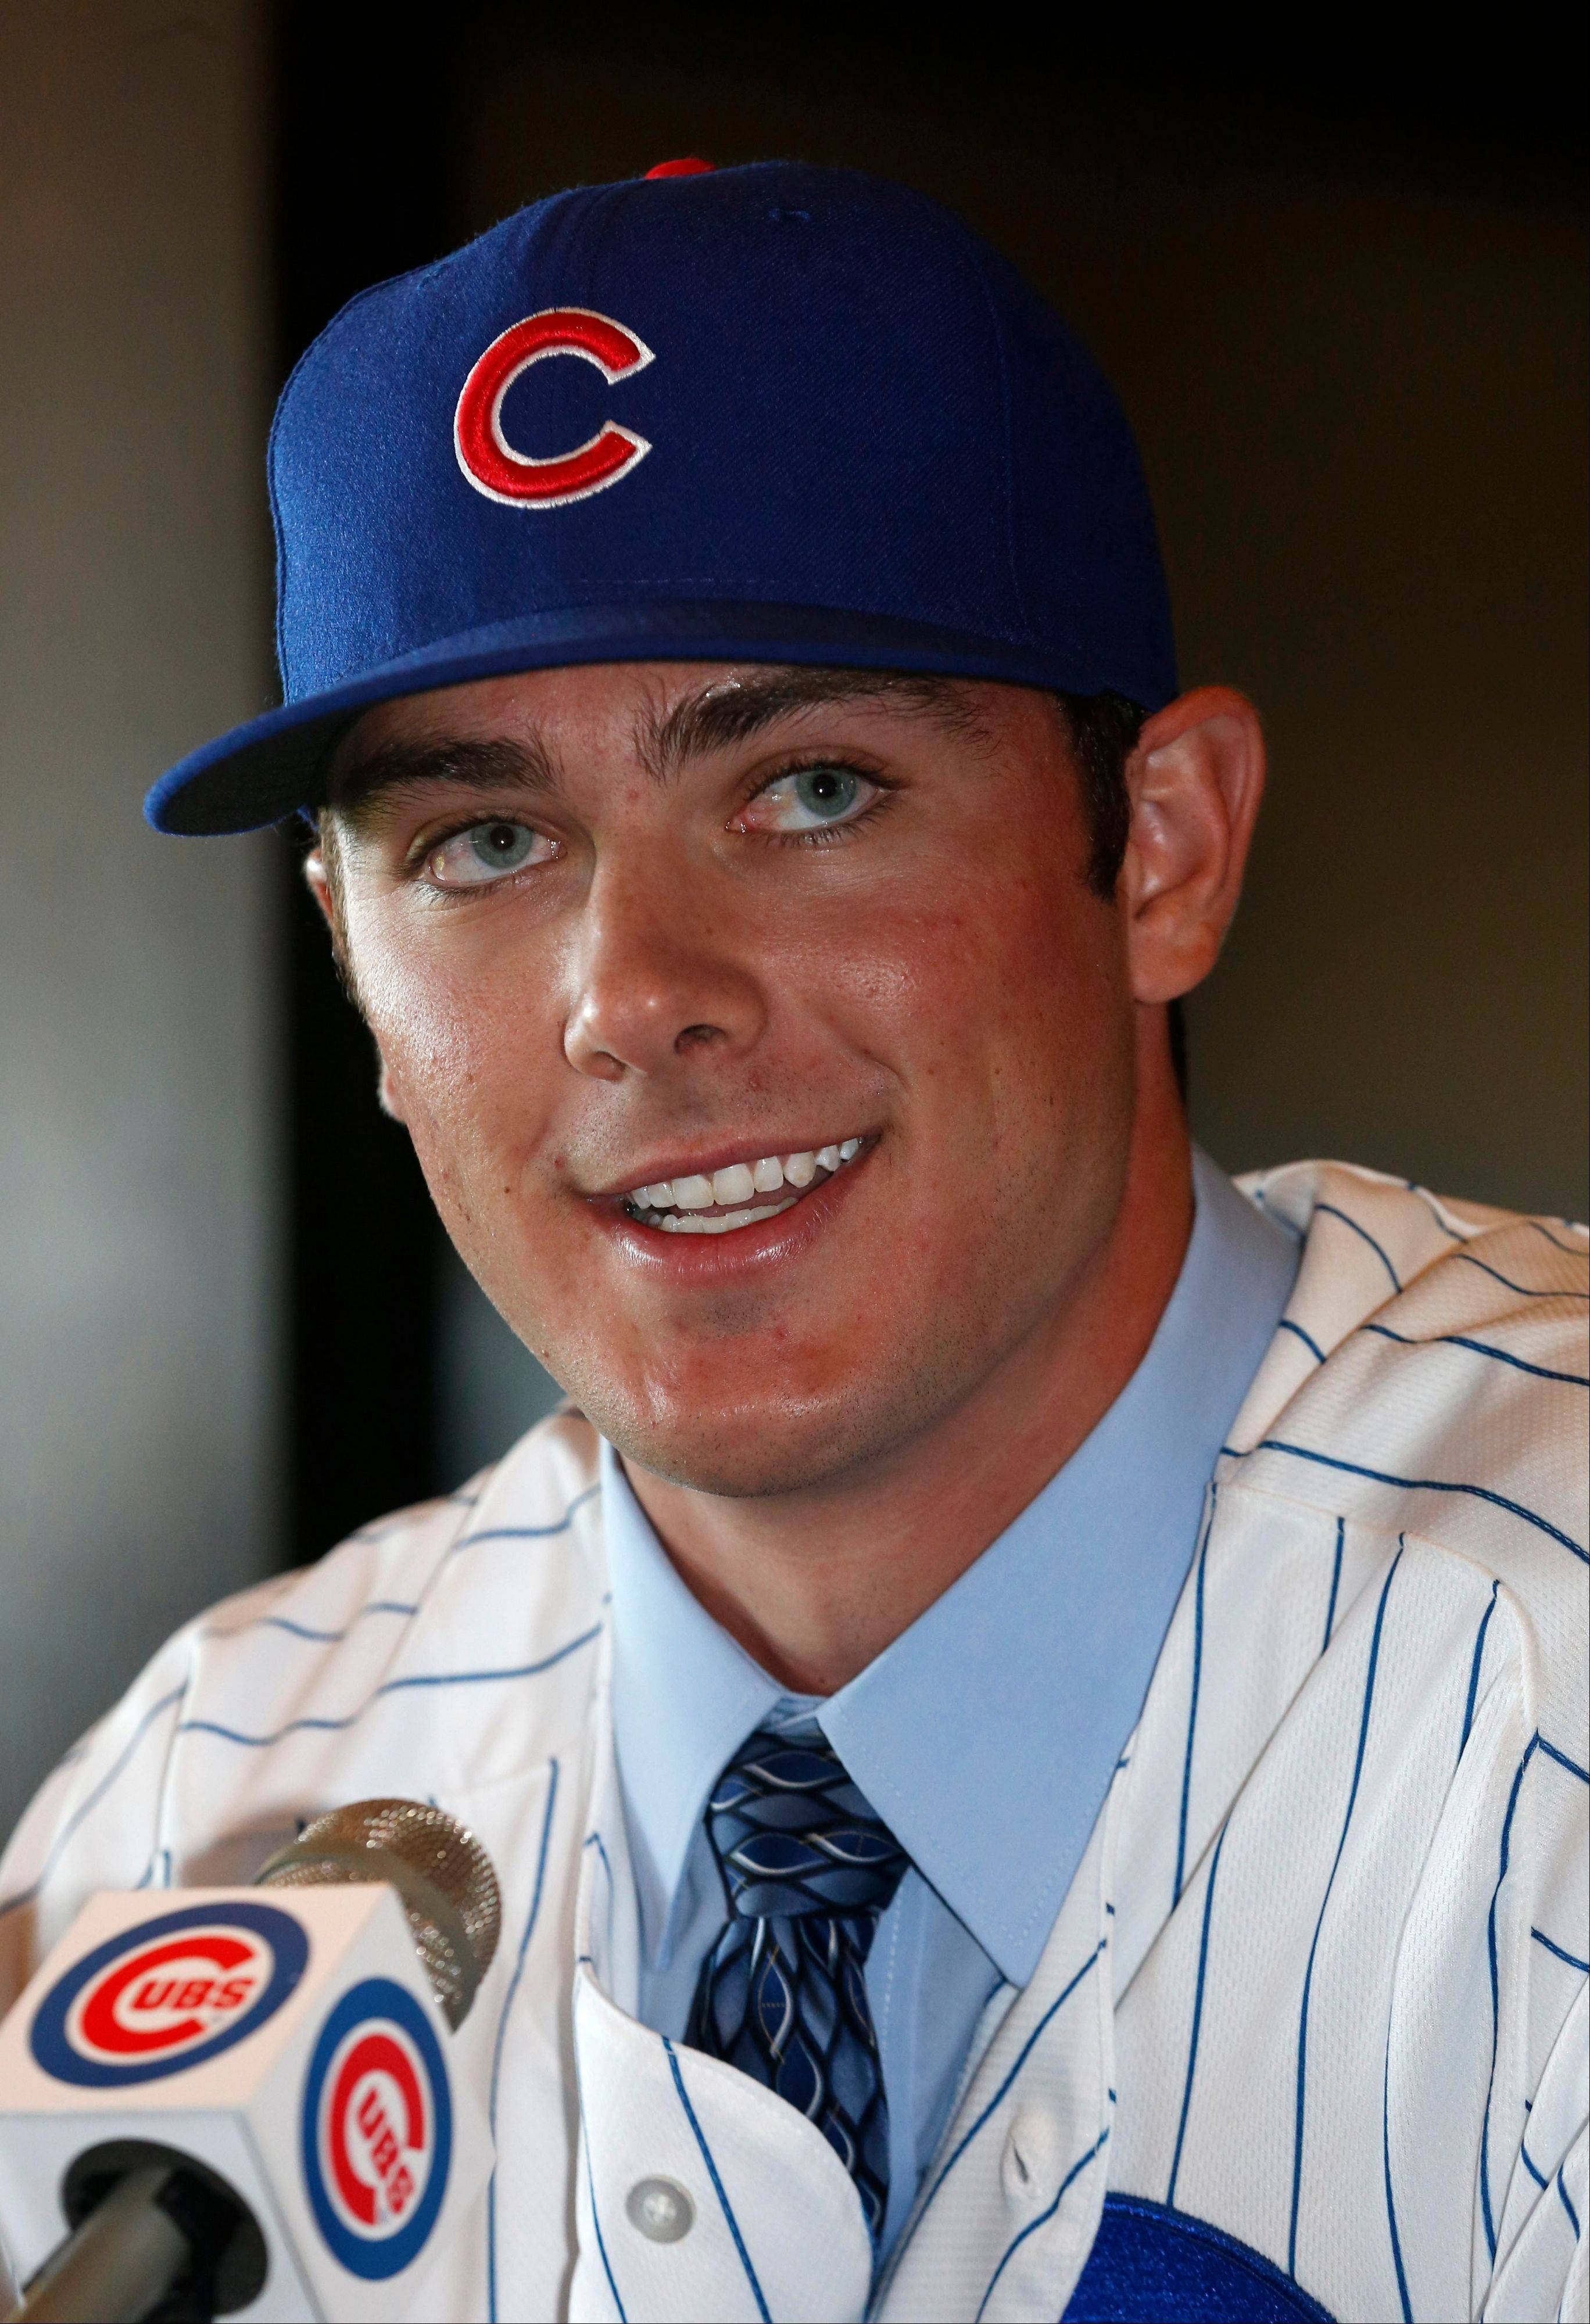 Kris Bryant smiles during a news conference where he was introduced to the media on Friday at Wrigley Field.